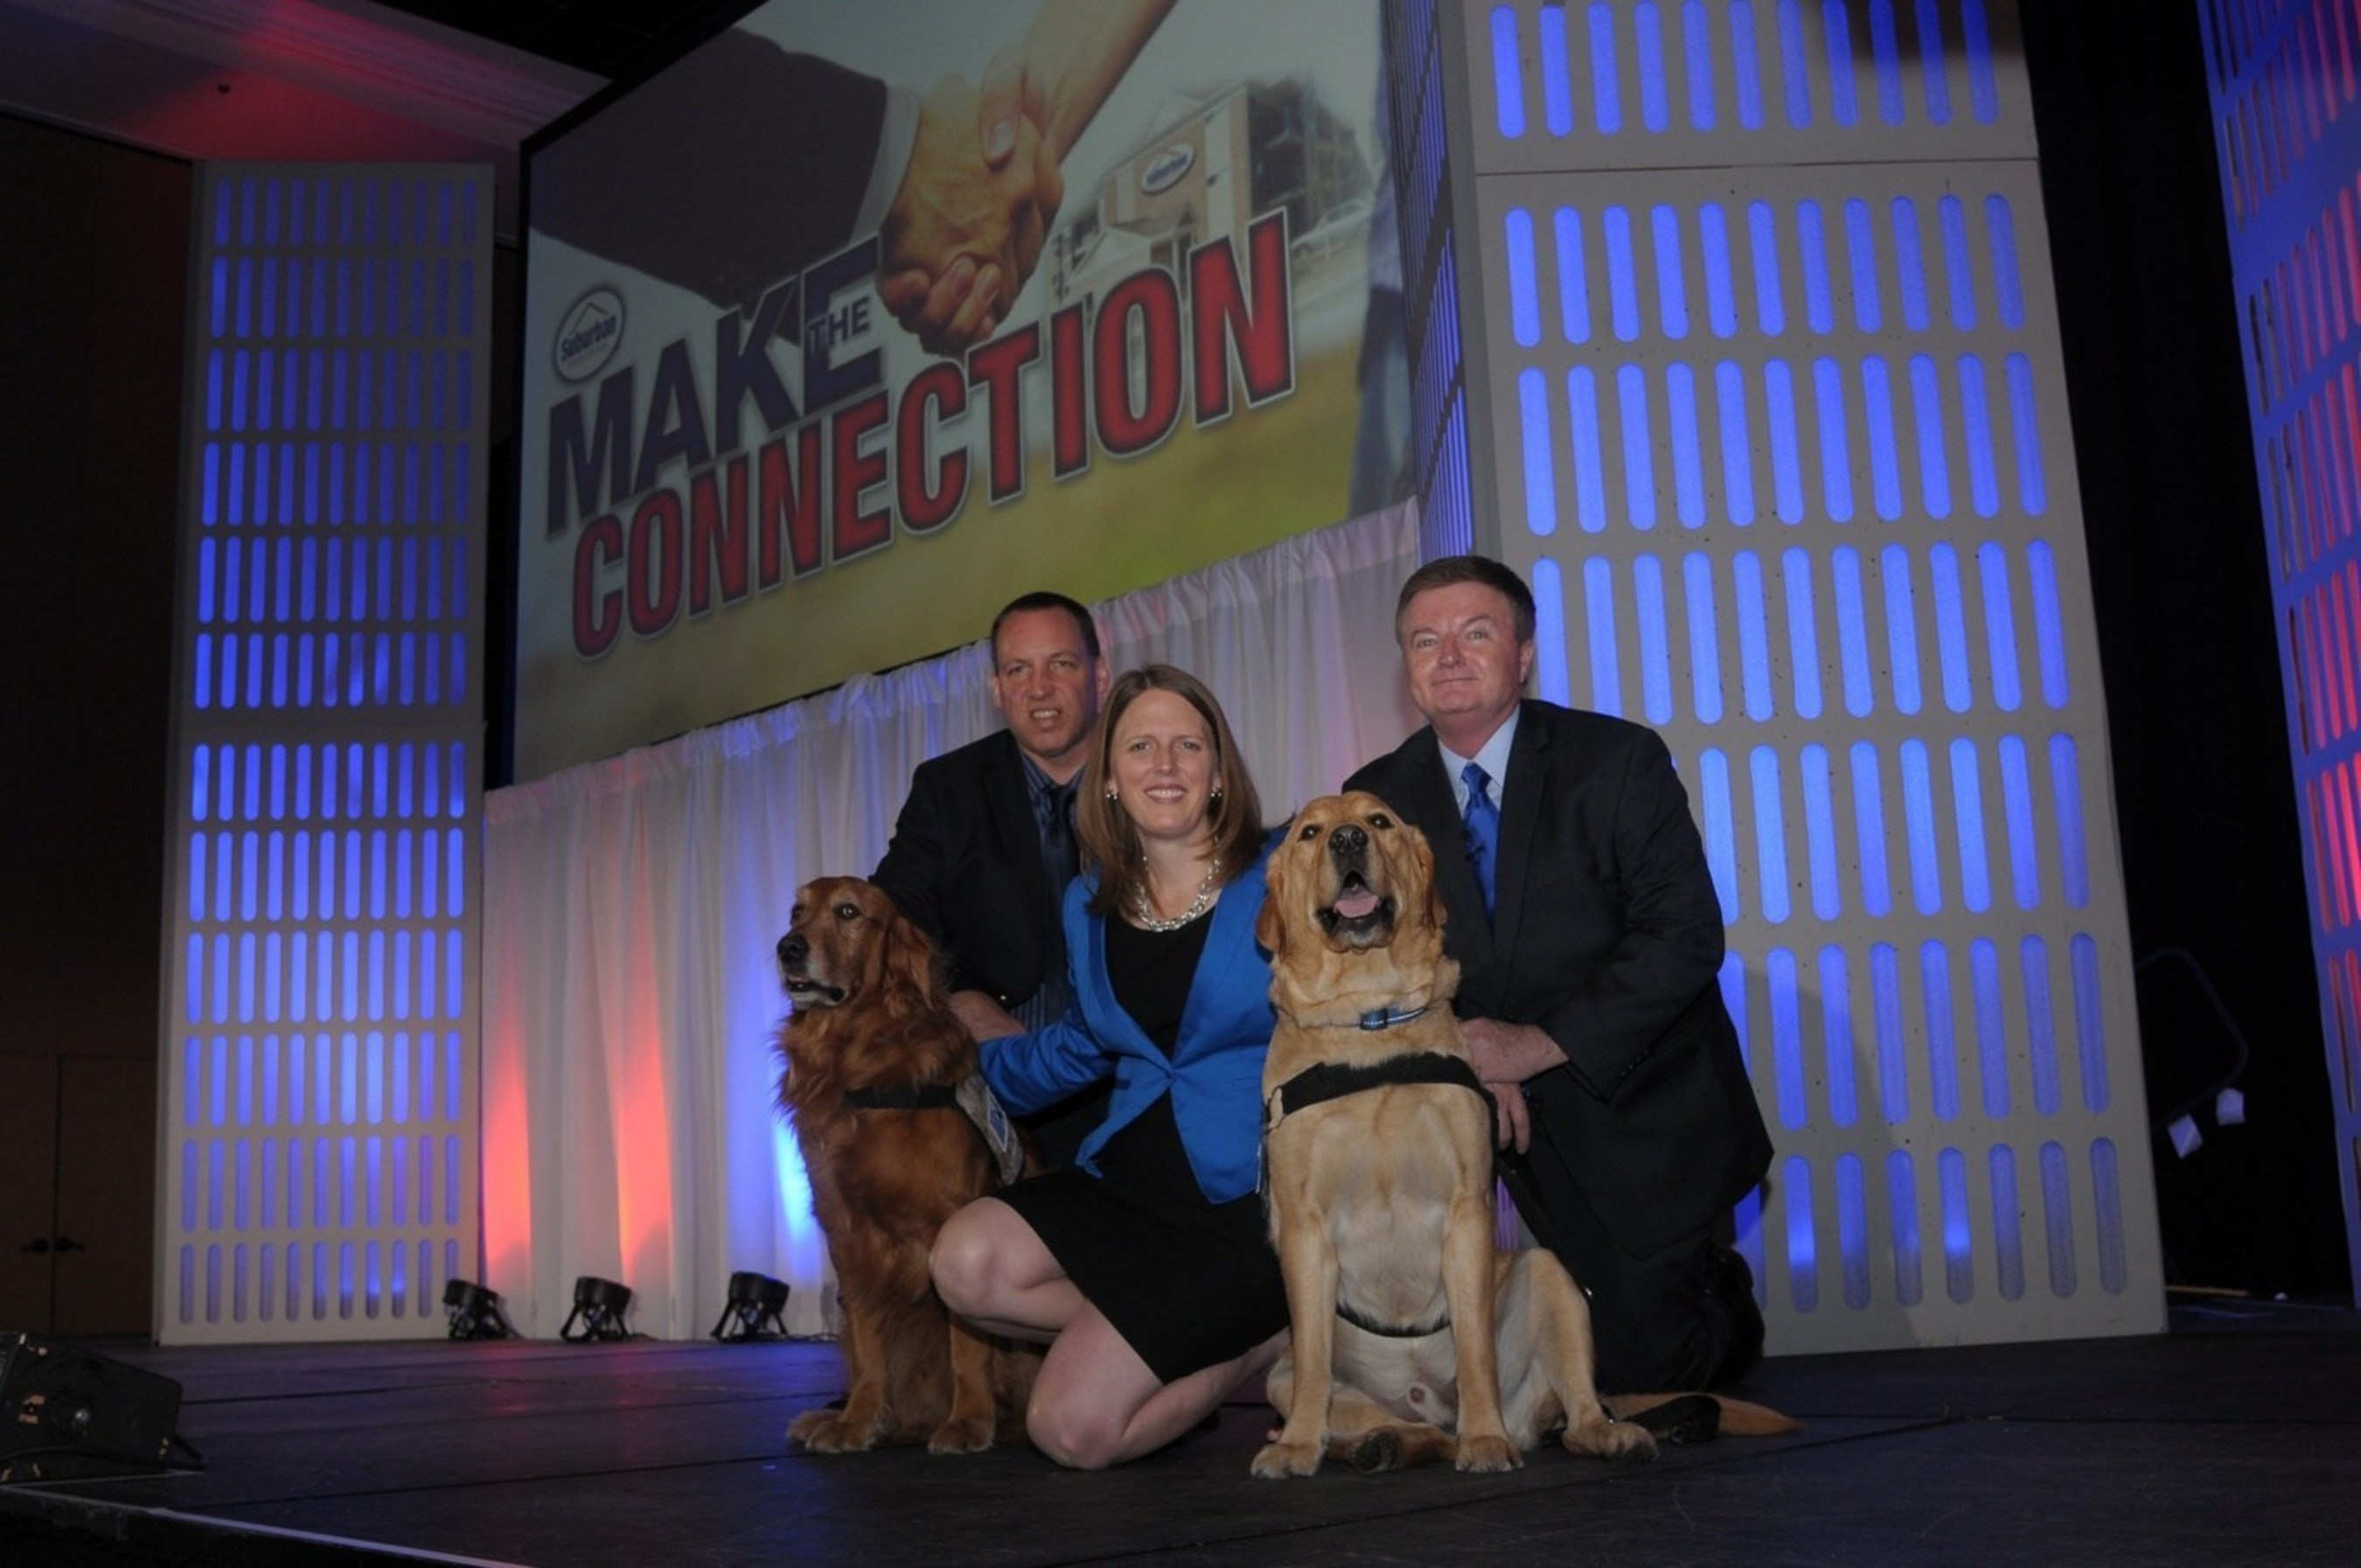 Choice Hotels' Suburban Extended Stay brand partners with America's bravest by supporting Maryland-based Warrior Canine Connection  Pictured: (Humans) Rick Yount, founder and executive director of Warrior Canine Connection Caragh McLaughlin,  head of brand management for Suburban Extended Stay, Choice Hotels International Bill Petschonek, director of brand strategy for Suburban Extended Stay, Choice Hotels International  (Canines) Huff (left) Ron (right) (PRNewsFoto/Choice Hotels International, Inc)